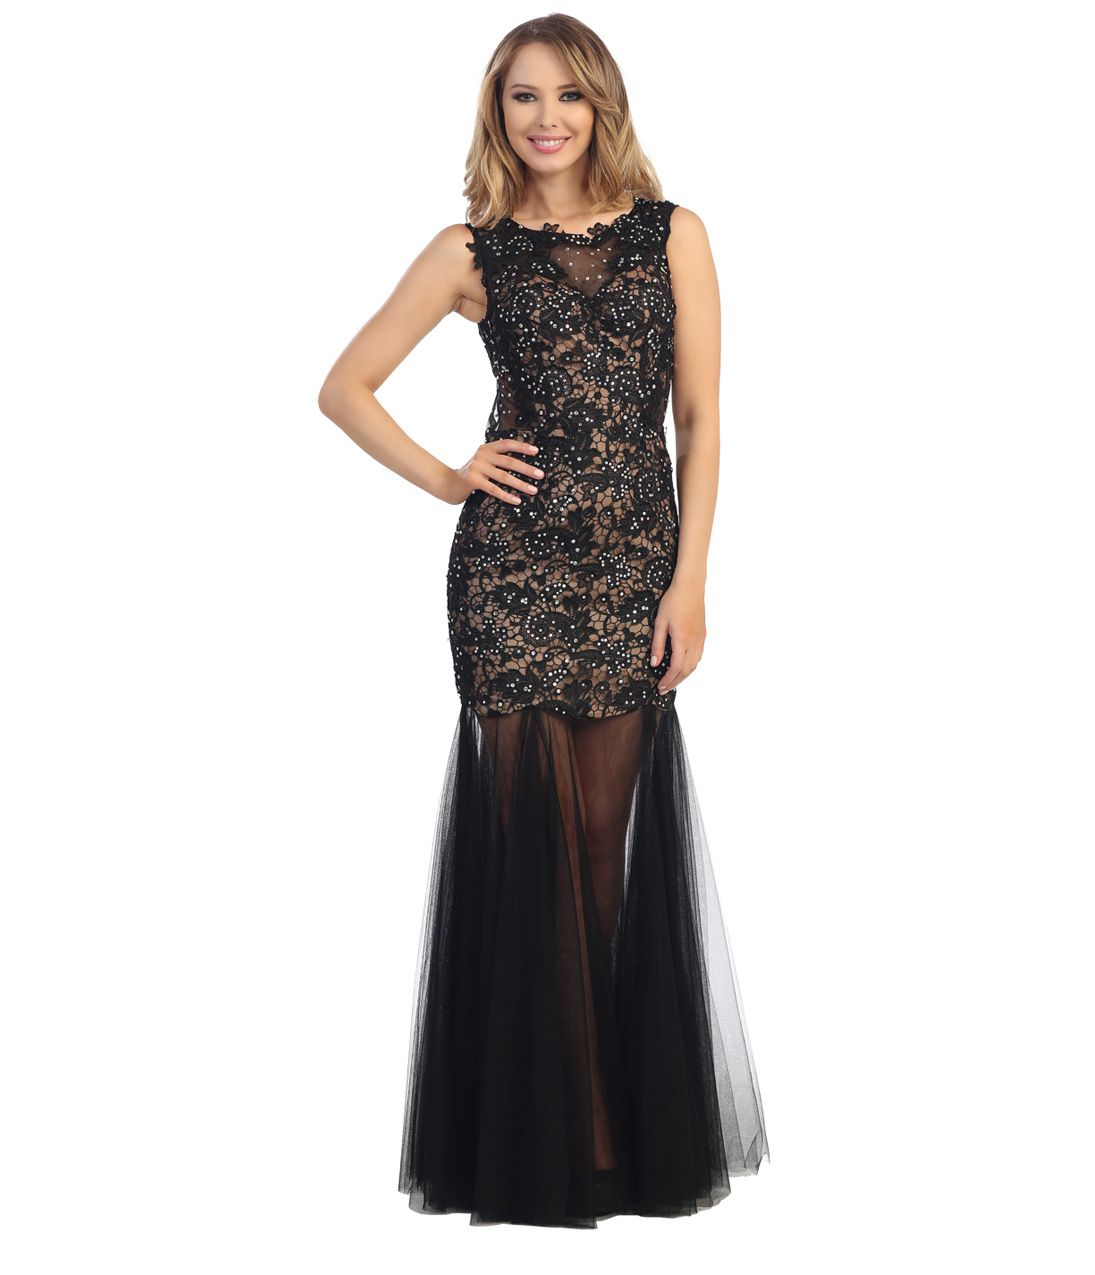 100 + Great Gatsby Prom Dresses for Sale   Mermaid gown, Prom and ...